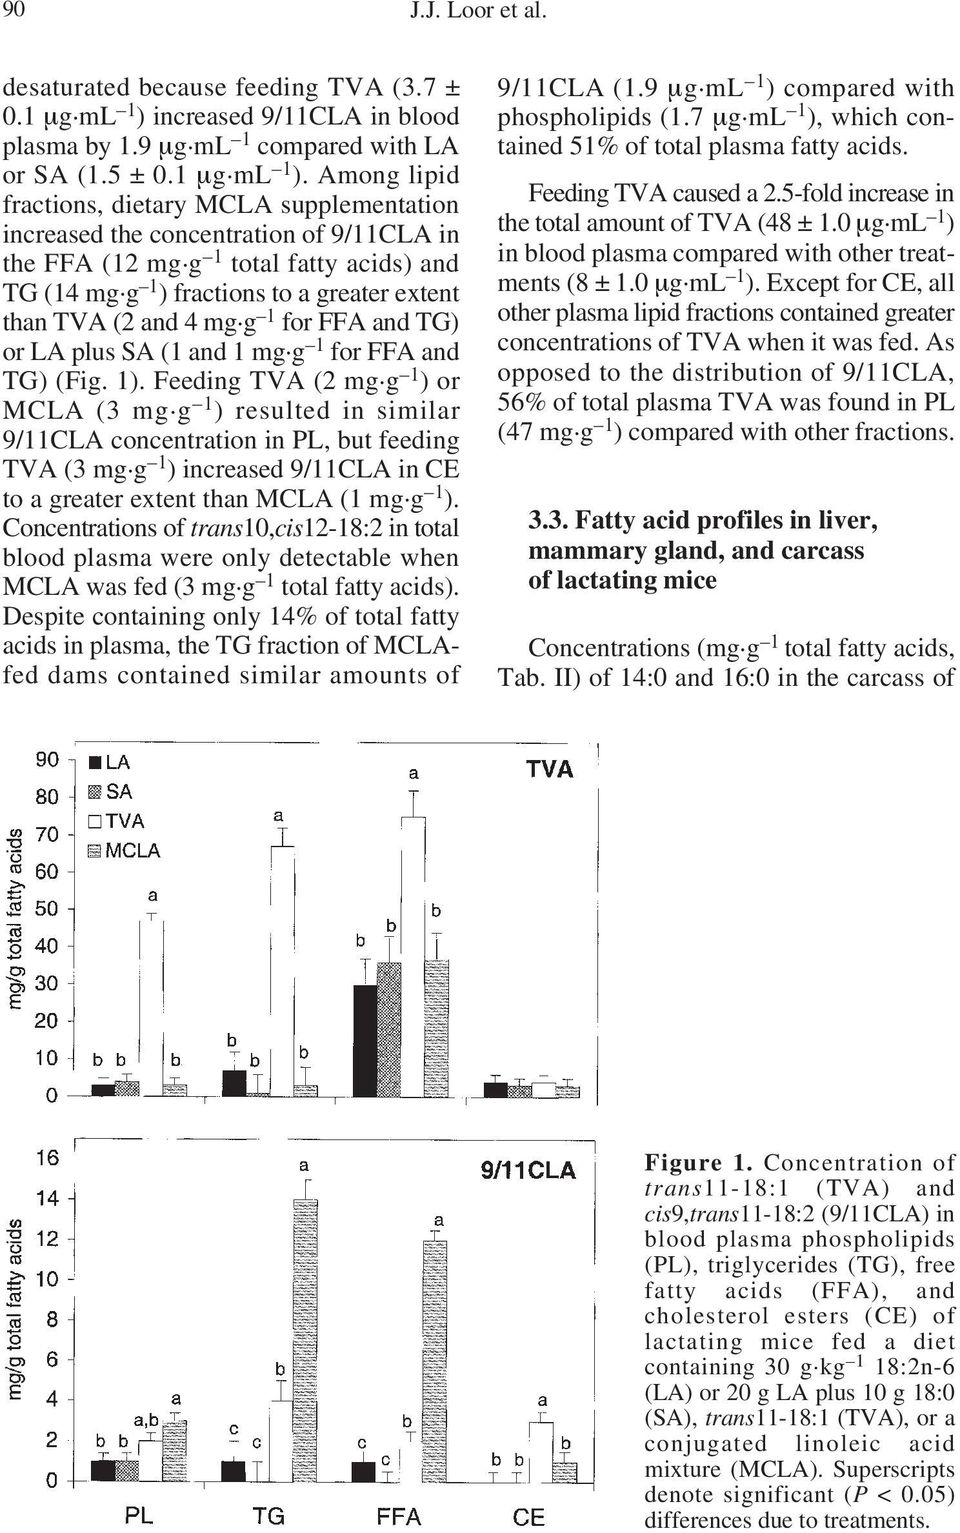 g 1 ) or MCLA (3 mg.g 1 ) resulted in similar 9/11CLA concentration in PL, but feeding TVA (3 mg.g 1 ) increased 9/11CLA in CE to a greater extent than MCLA (1 mg.g 1 ). Concentrations of trans10,cis12-18:2 in total blood plasma were only detectable when MCLA was fed (3 mg.